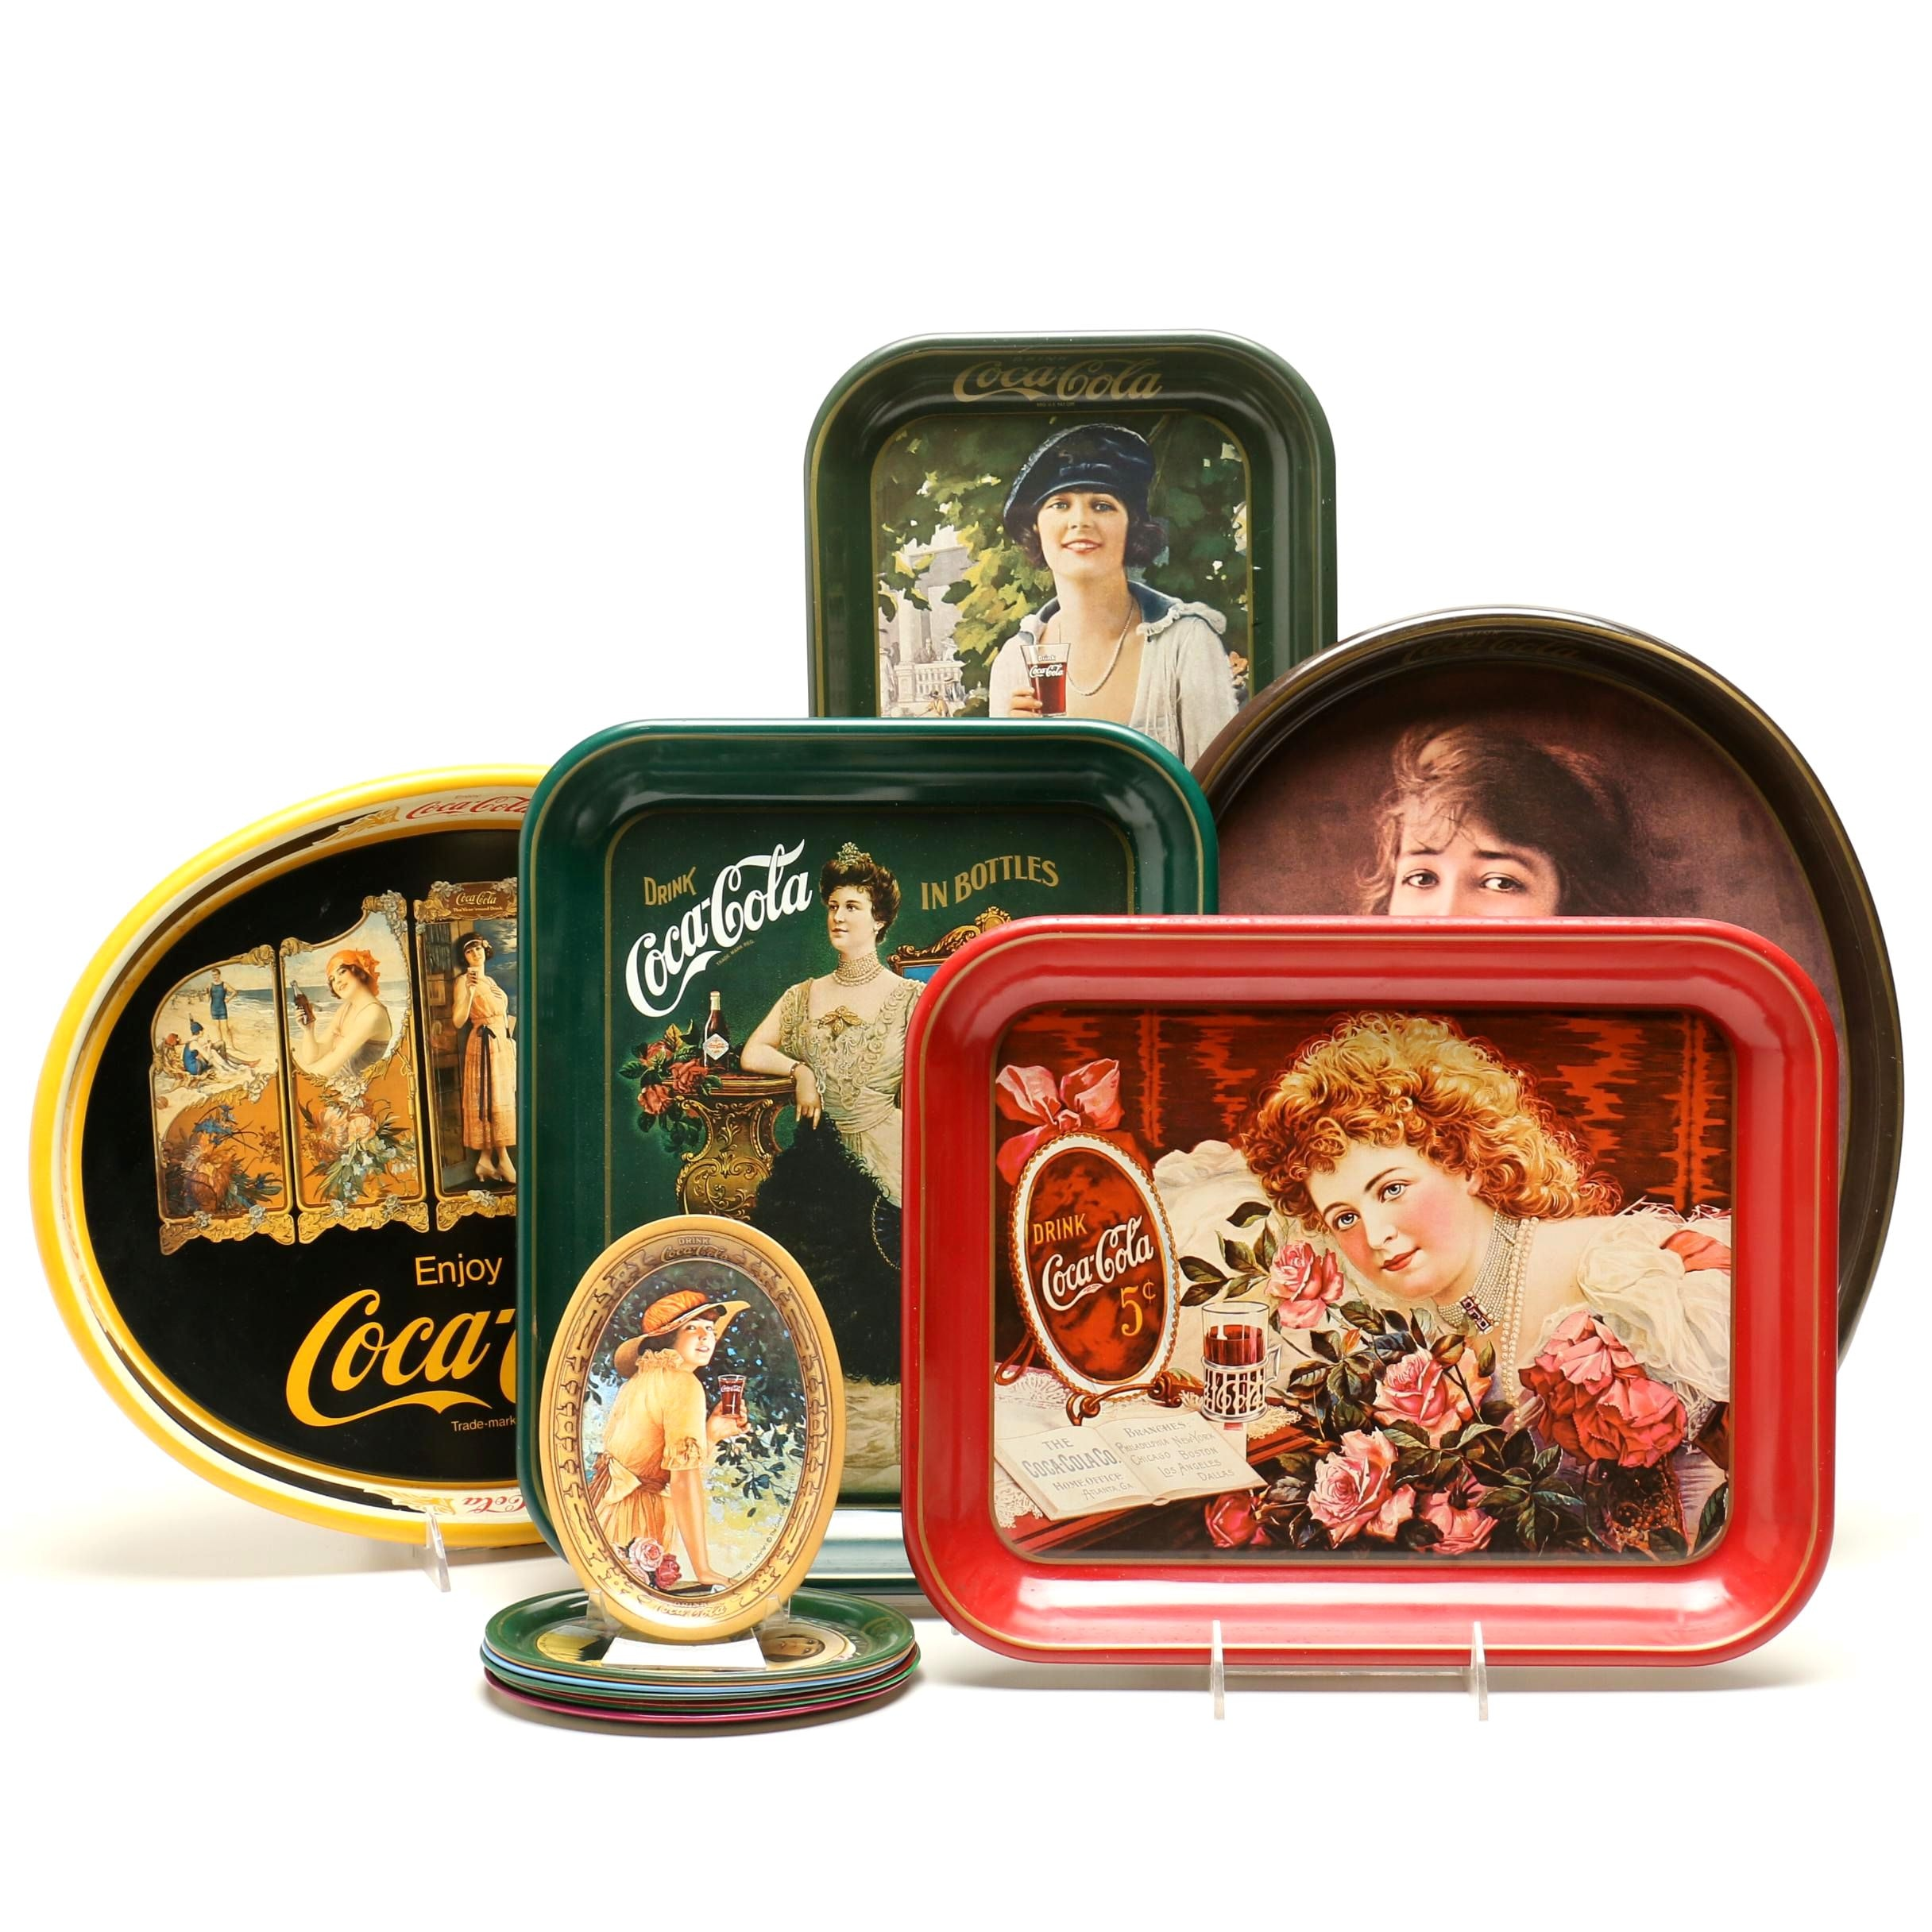 Coca-Cola Tin Serving Trays from the 1970s-80s